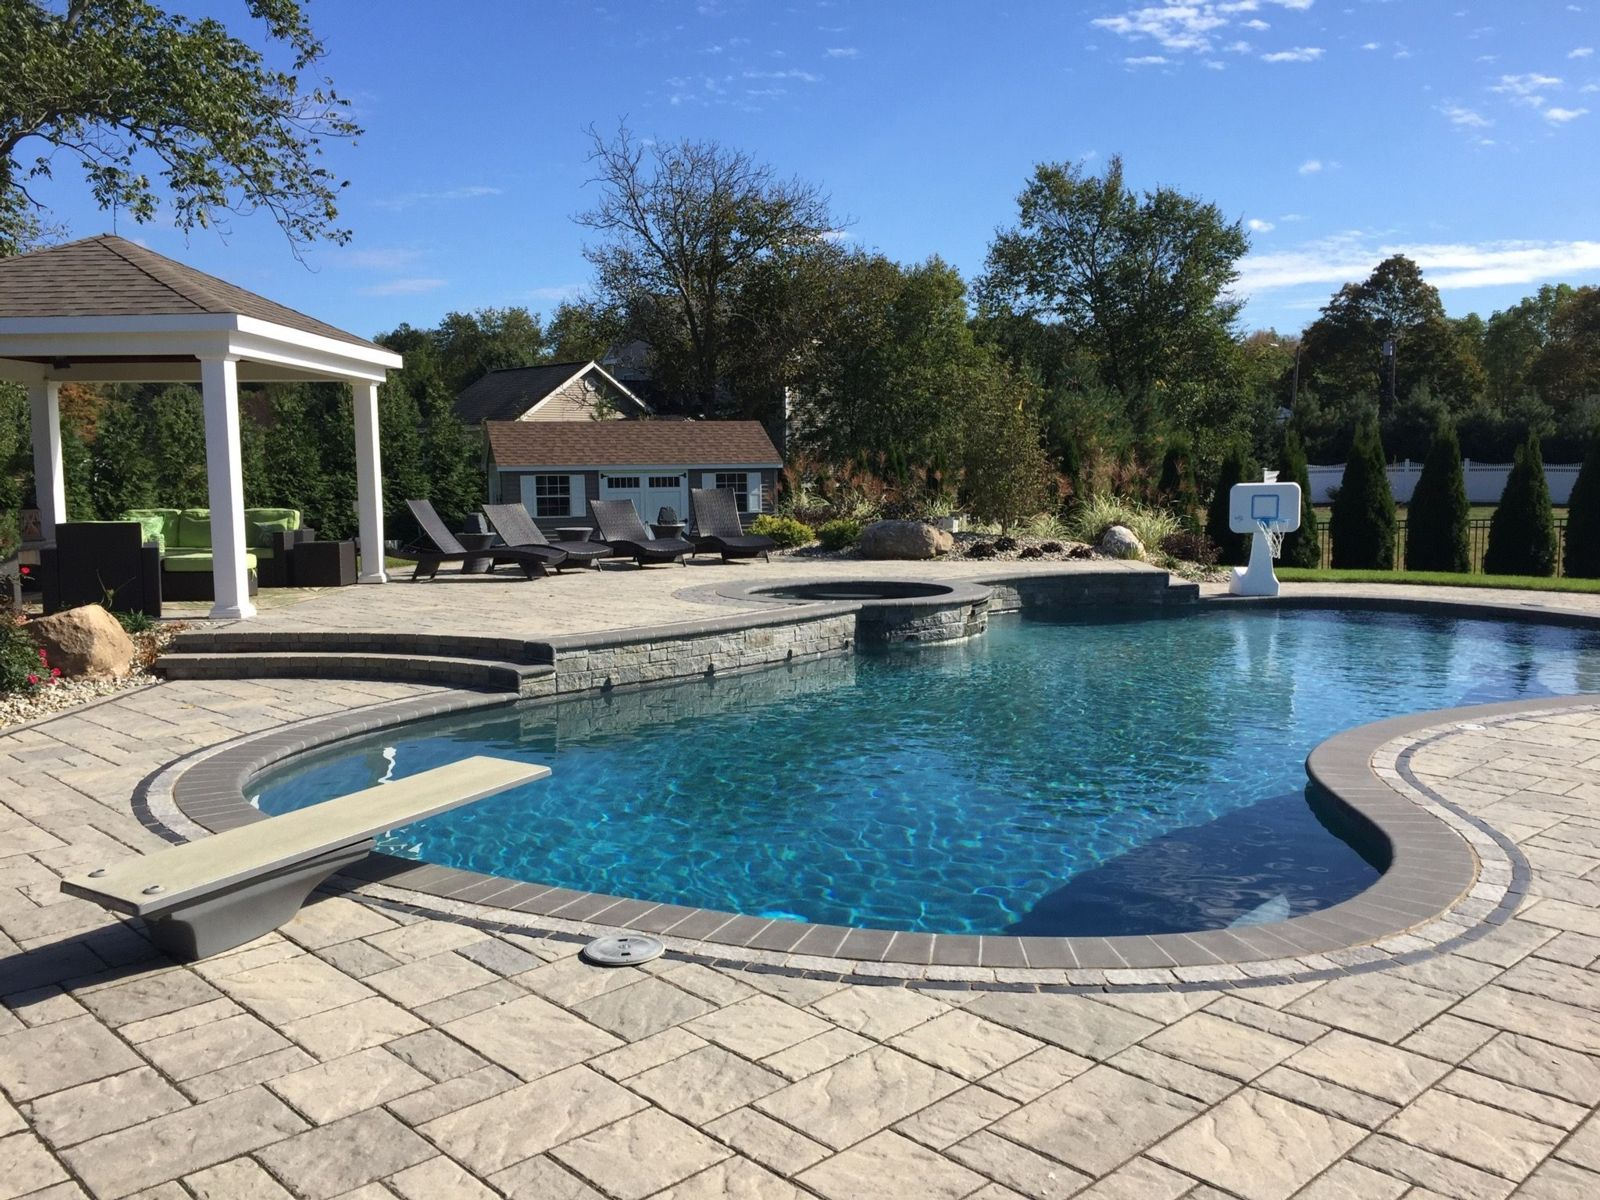 Pool Designs Well Suited to Homeowners with Kids in Farmington, CT